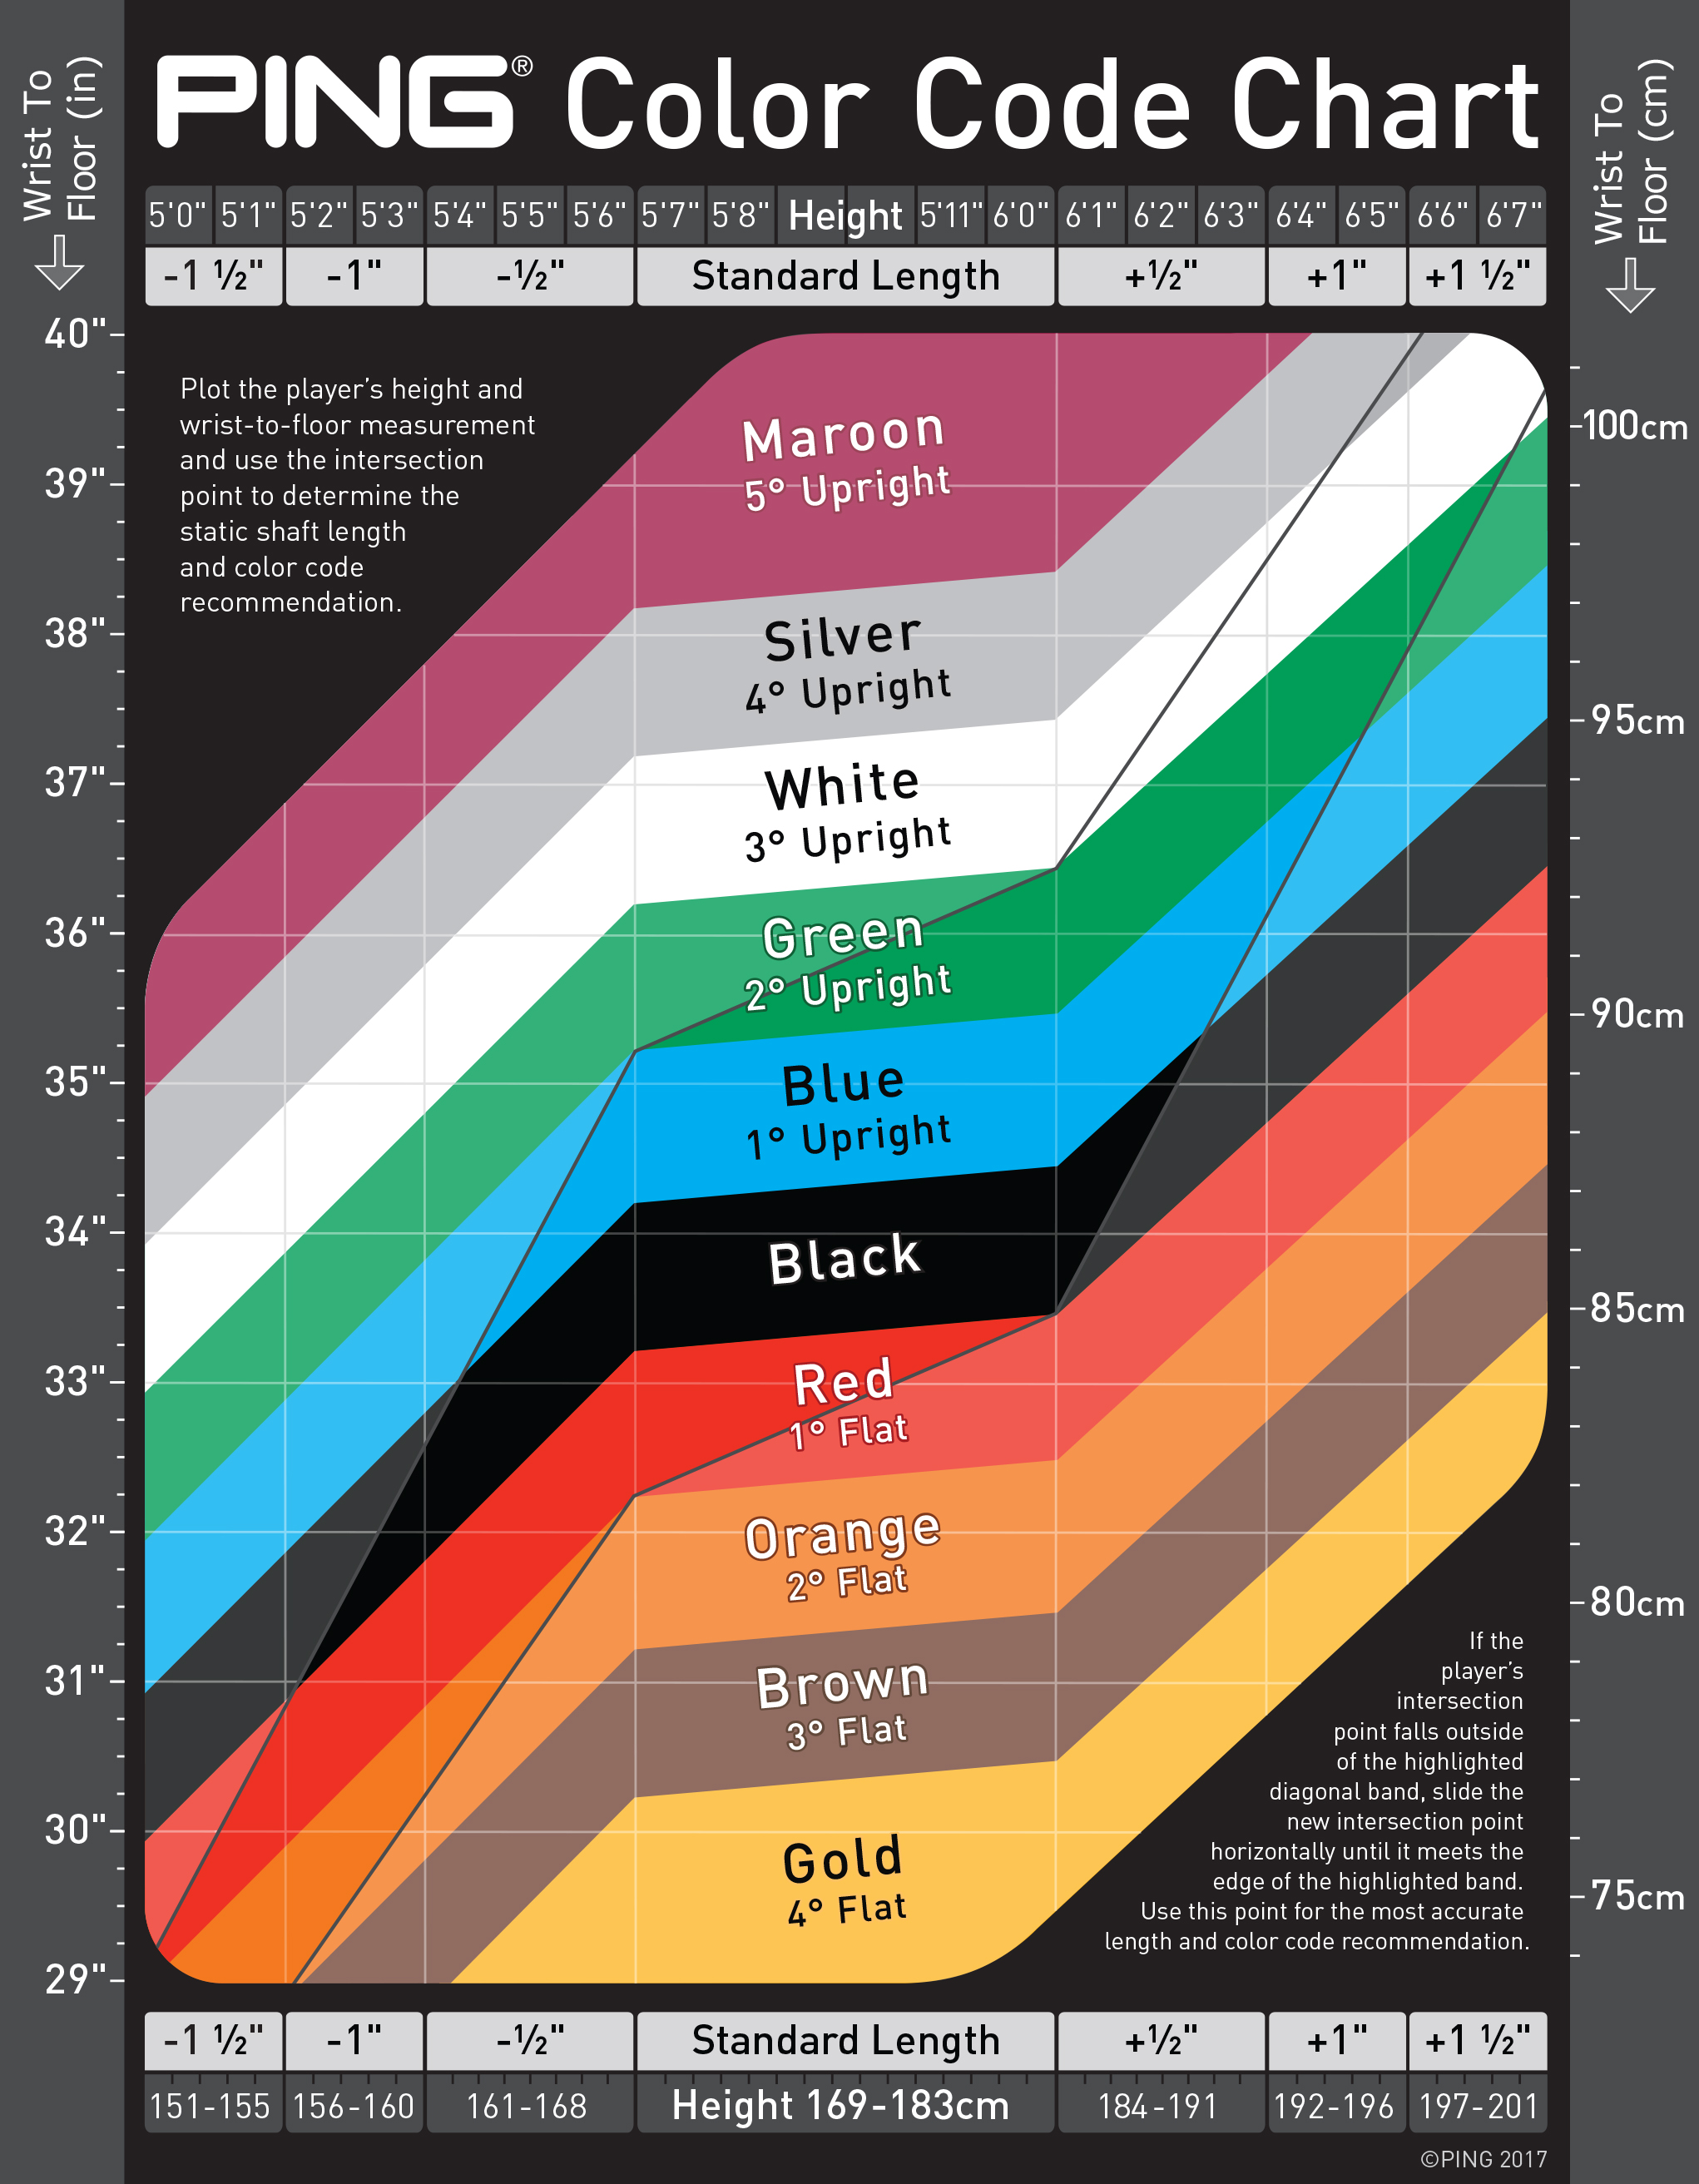 Ping golf color code chart